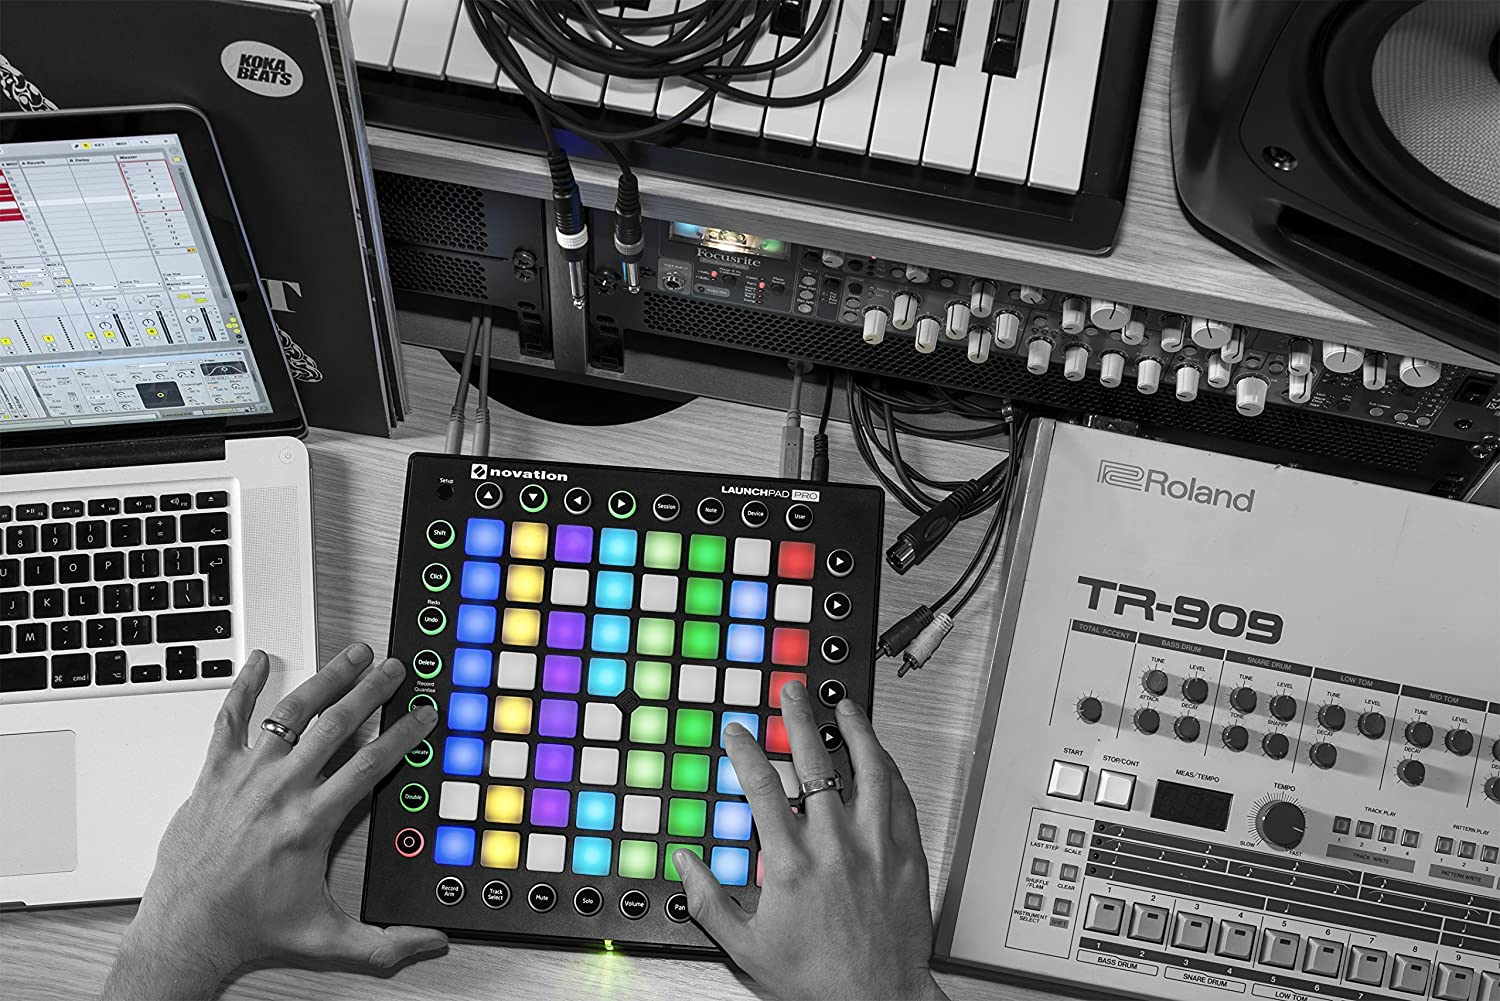 8x8 Grid Novation Launchpad Ableton Live Controller with 64 RGB Backlit Pads Renewed